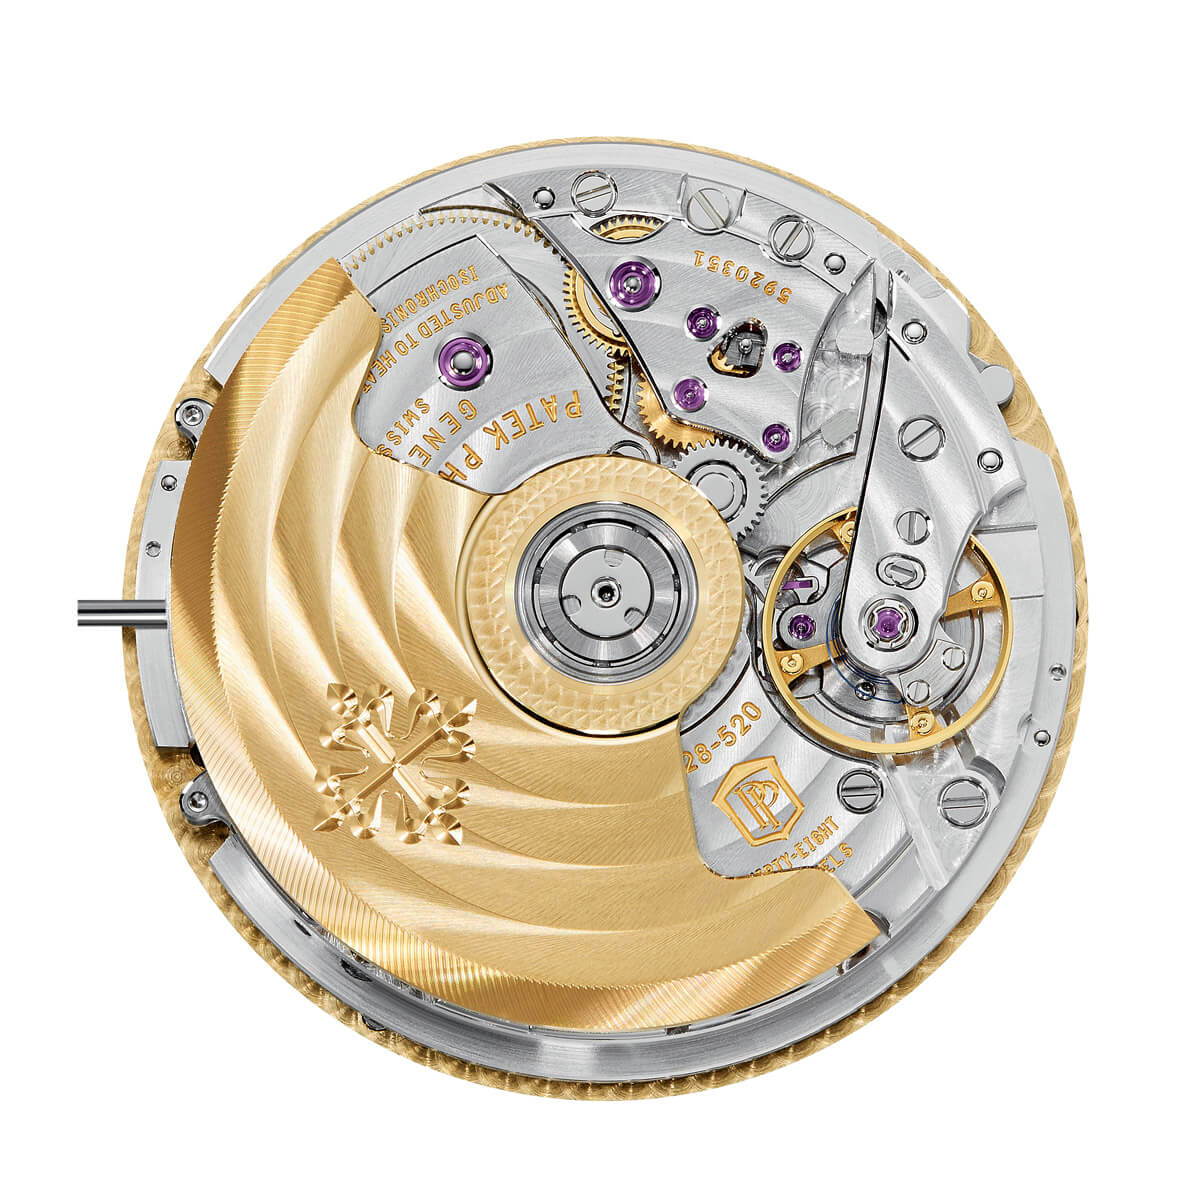 Patek_Philippe_World_Time_Chronograph_Ref. 5930_movement - ESCAPEMENT Magazine - watch reviews by Angus Davies